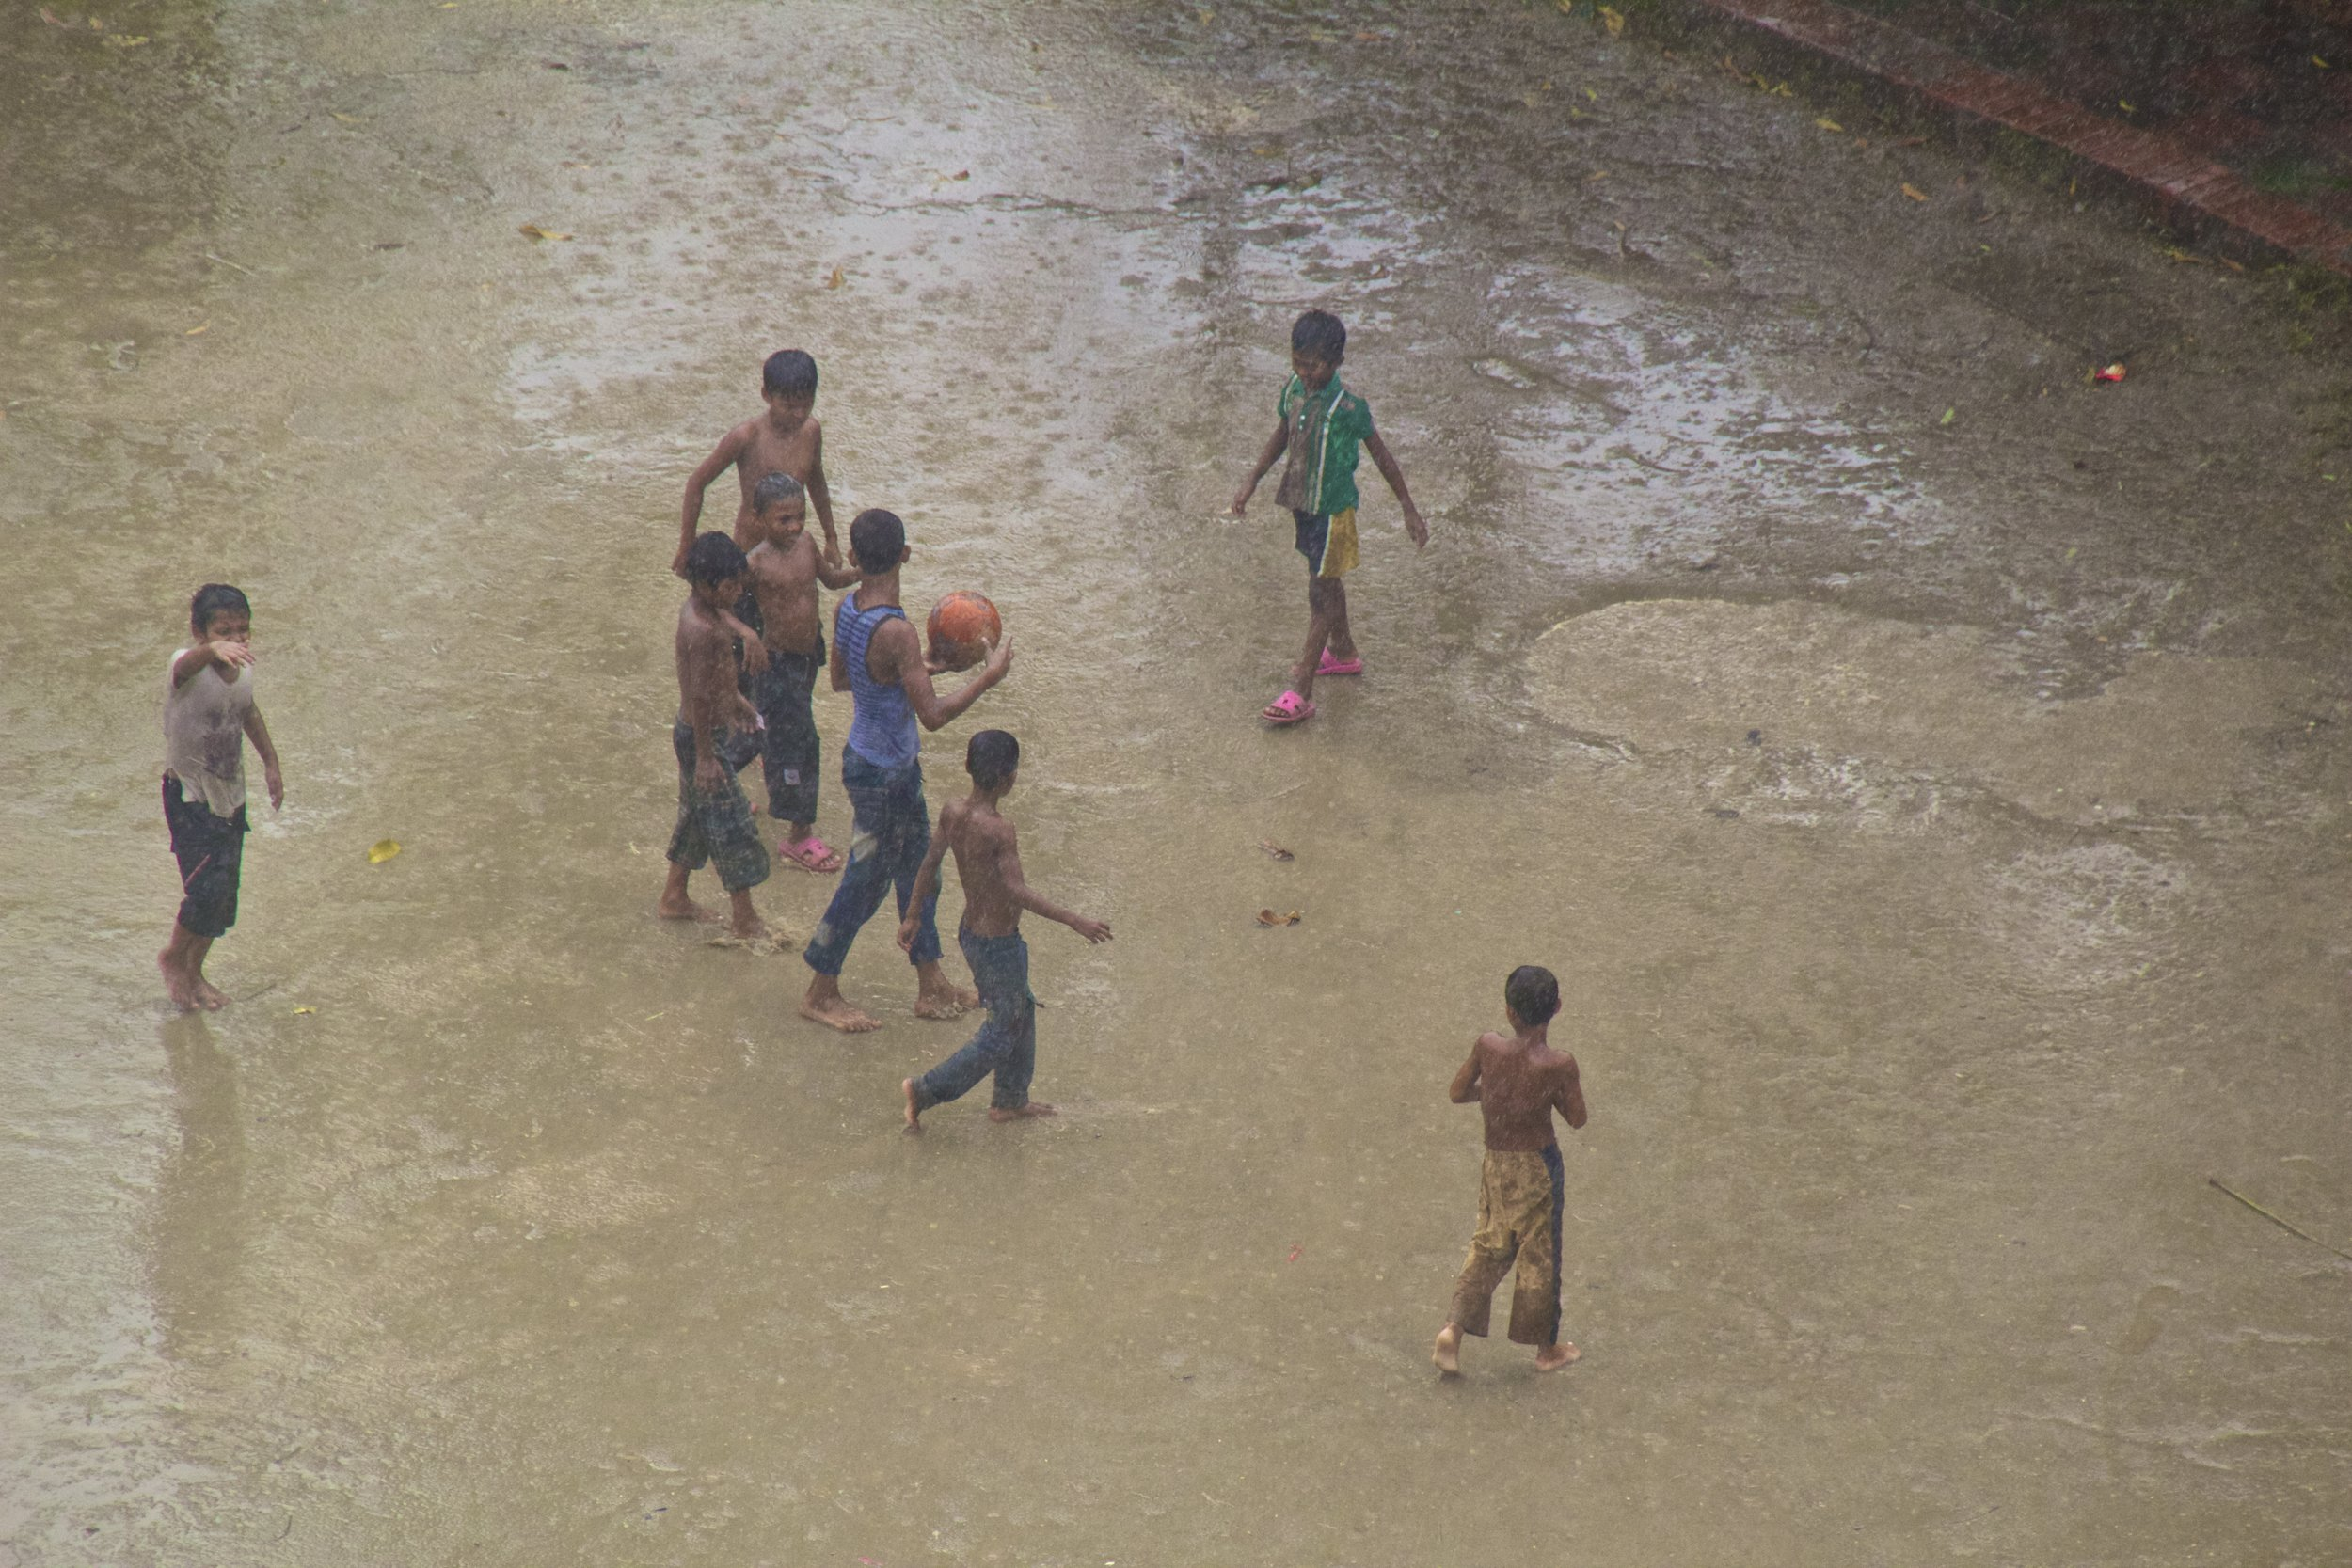 dhaka bangladesh slums children play in monsoon rain.jpg